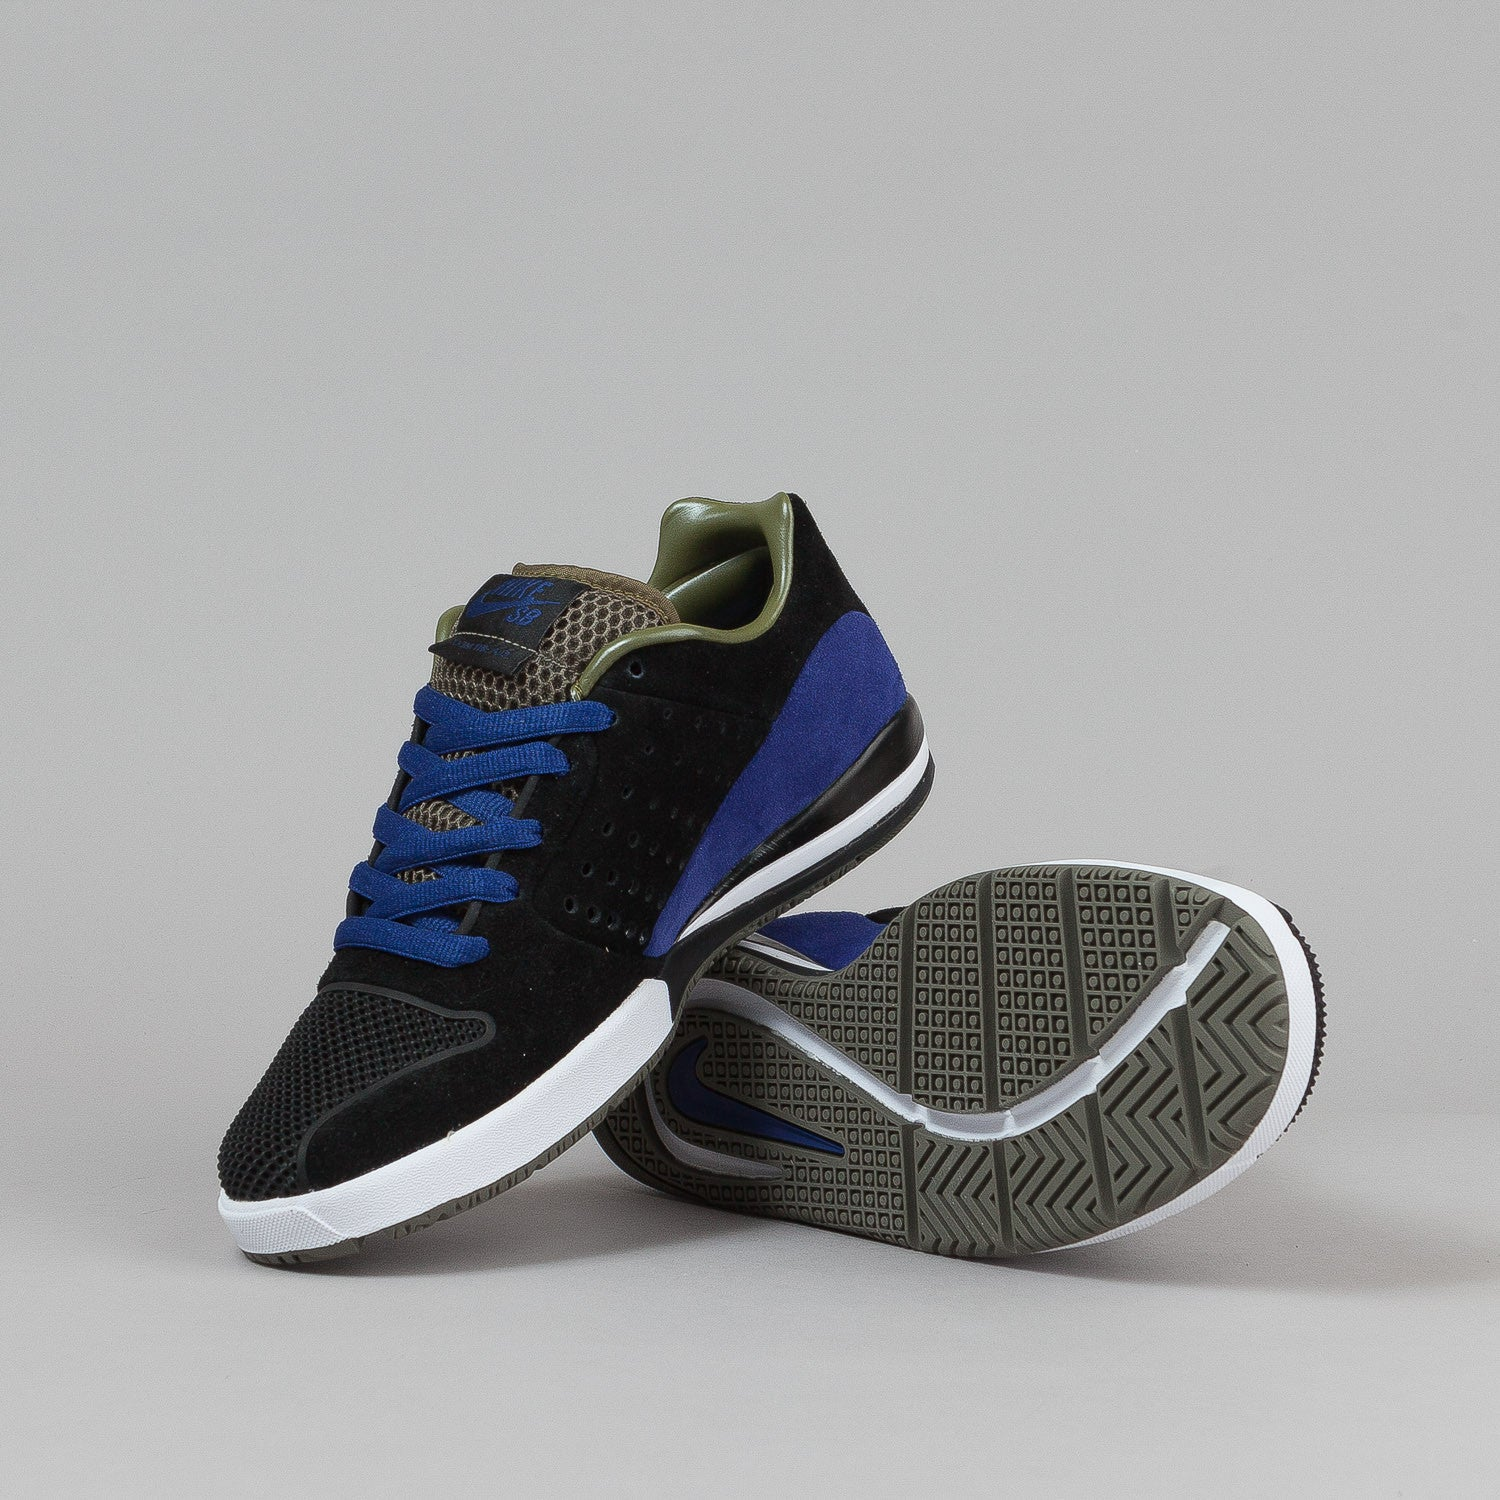 Nike SB Zoom Tre A.D. Shoes - Black / Pilgrim